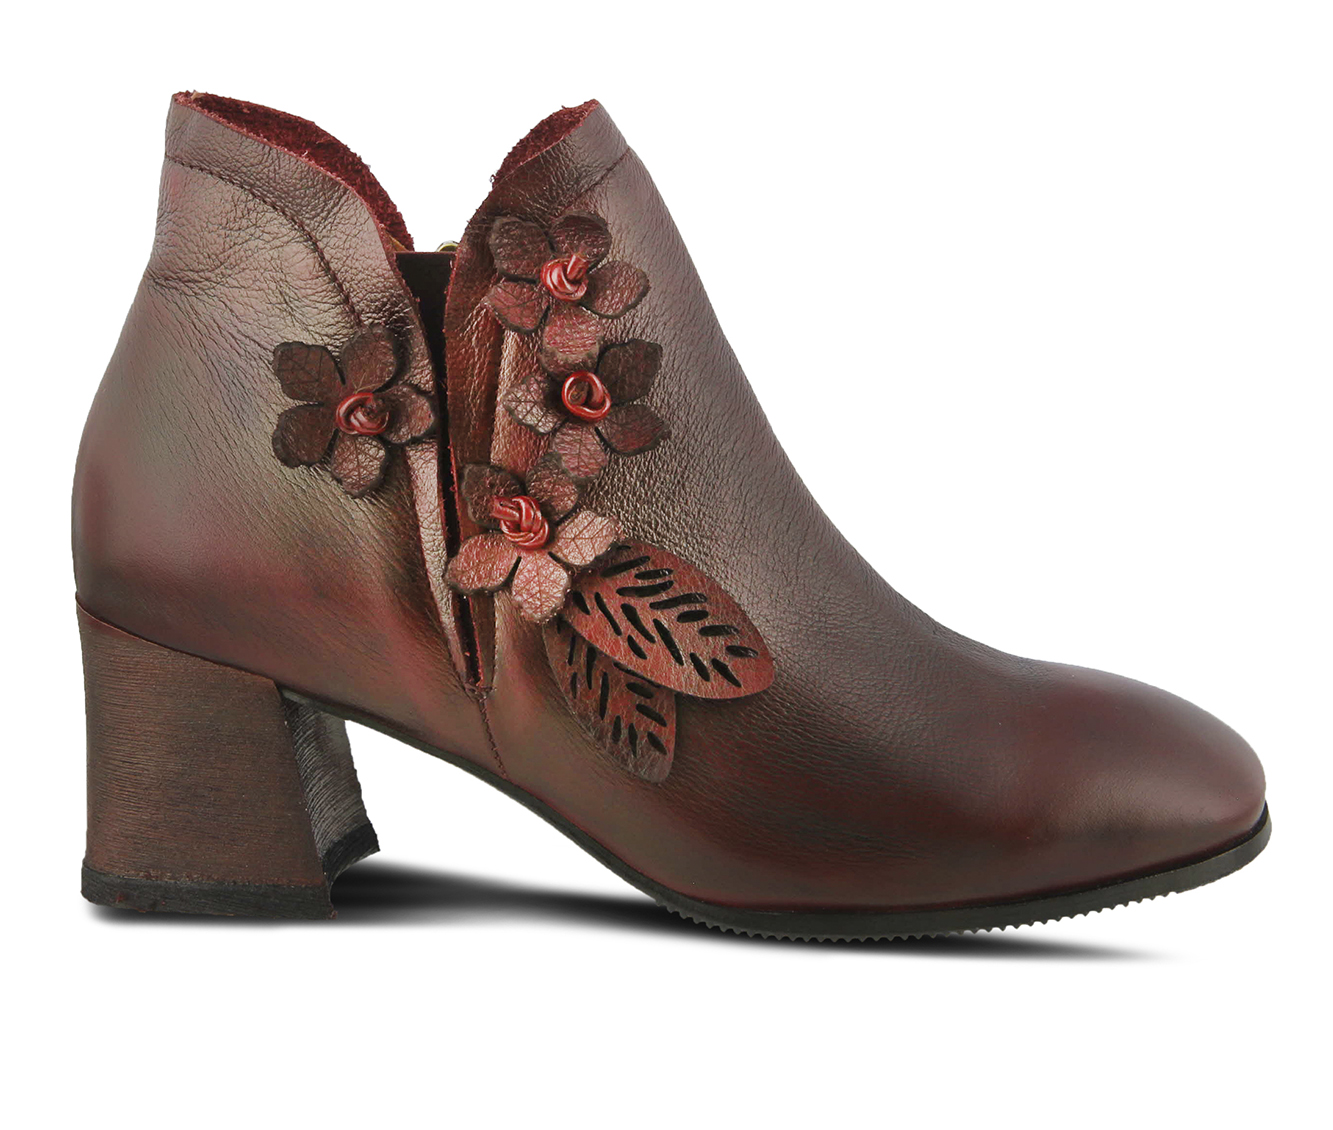 L'Artiste Loralie Women's Boots (Red Leather)